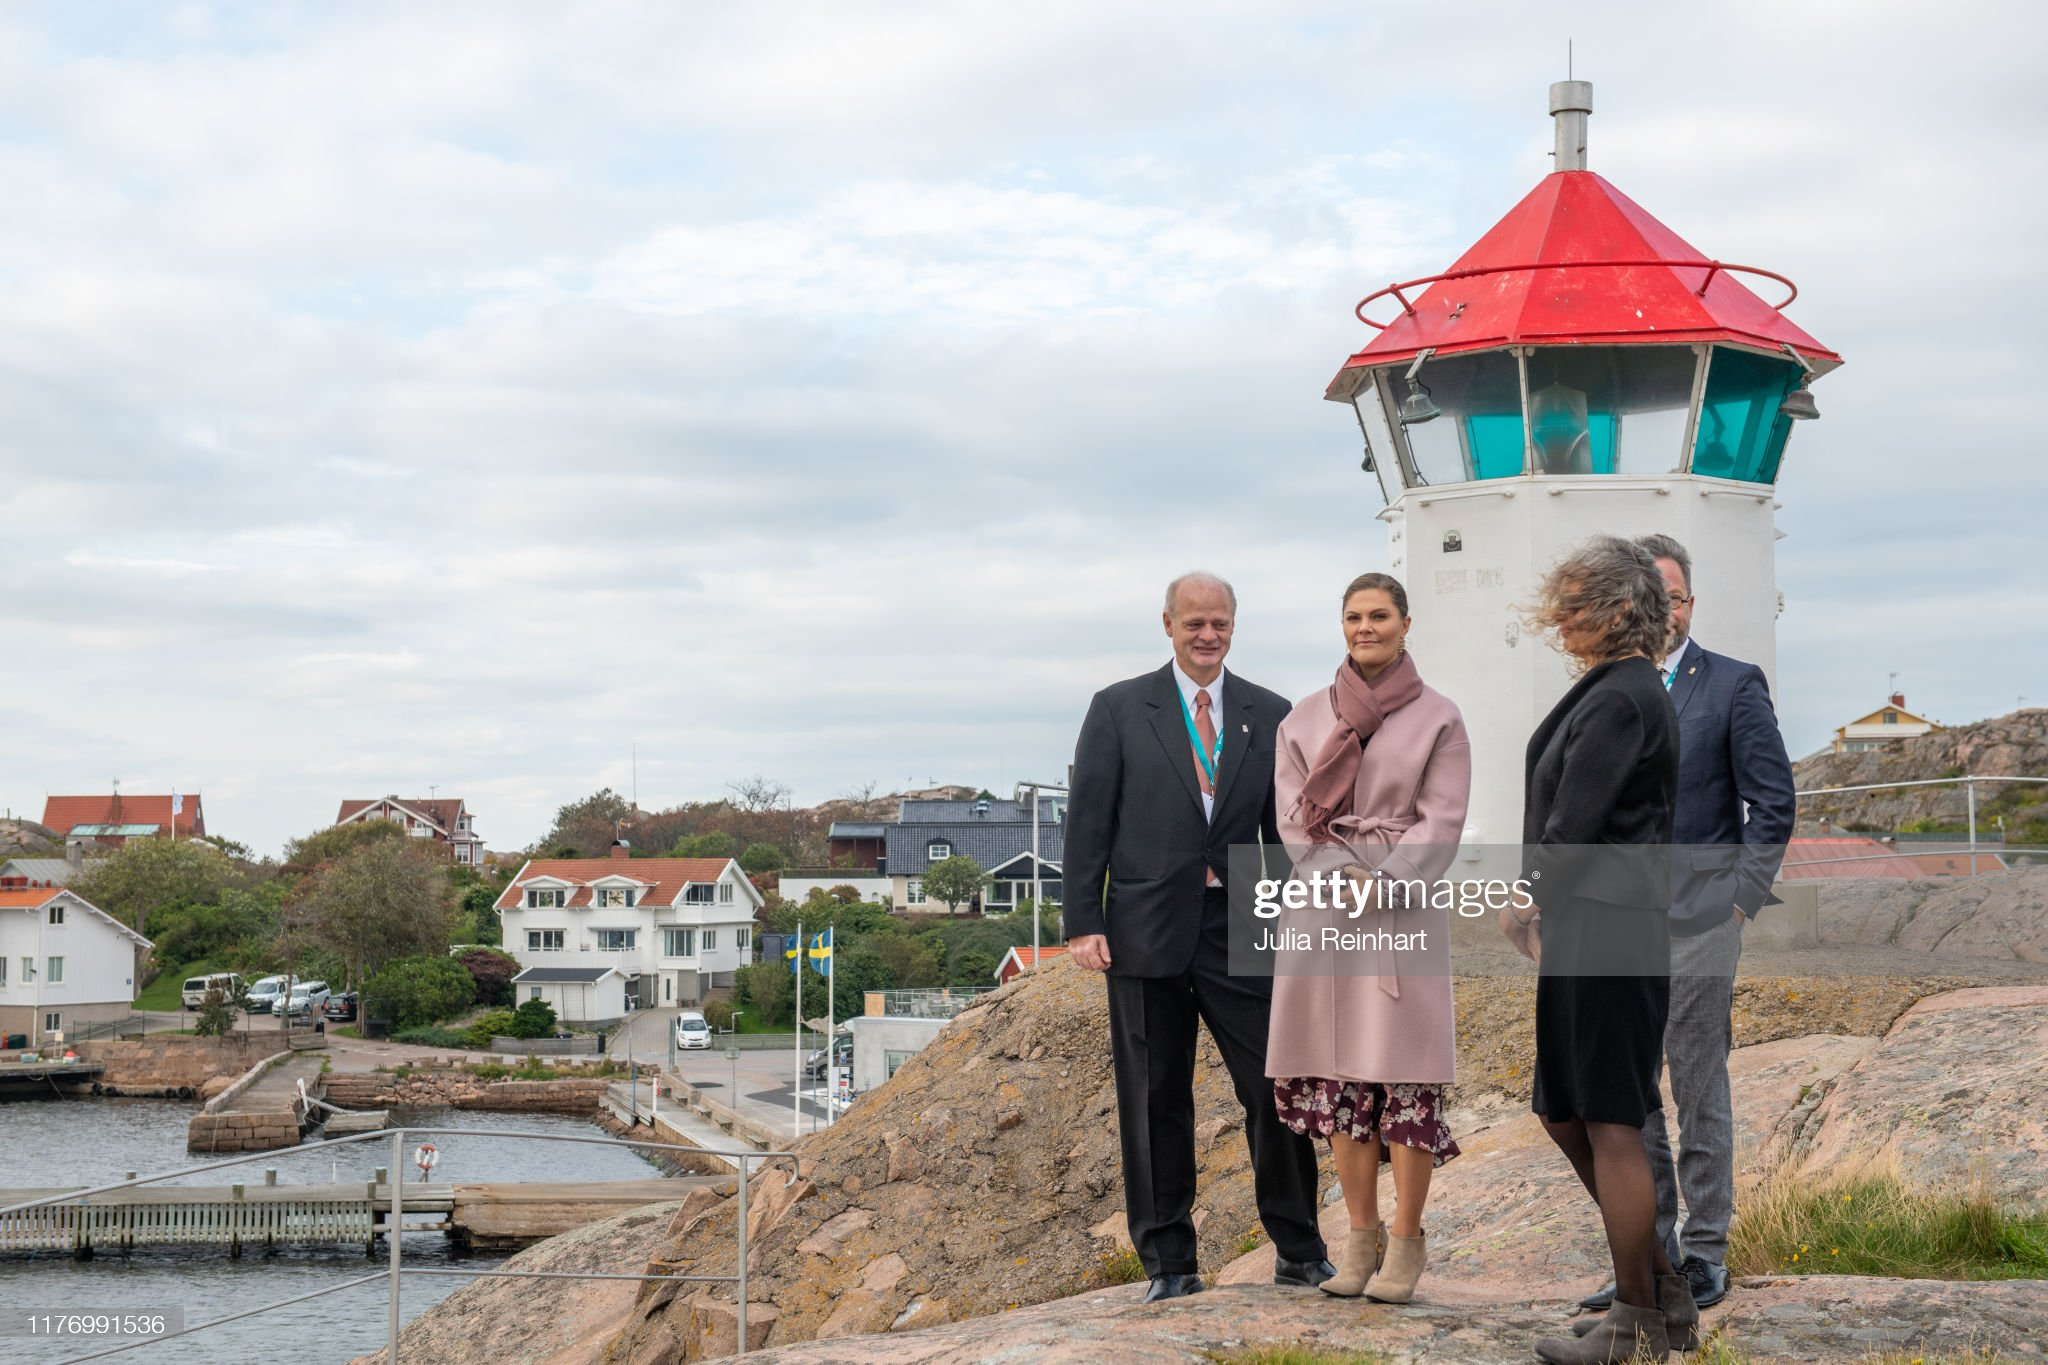 crown-princess-victoria-takes-in-the-scenery-of-lysekil-bay-during-picture-id1176991536